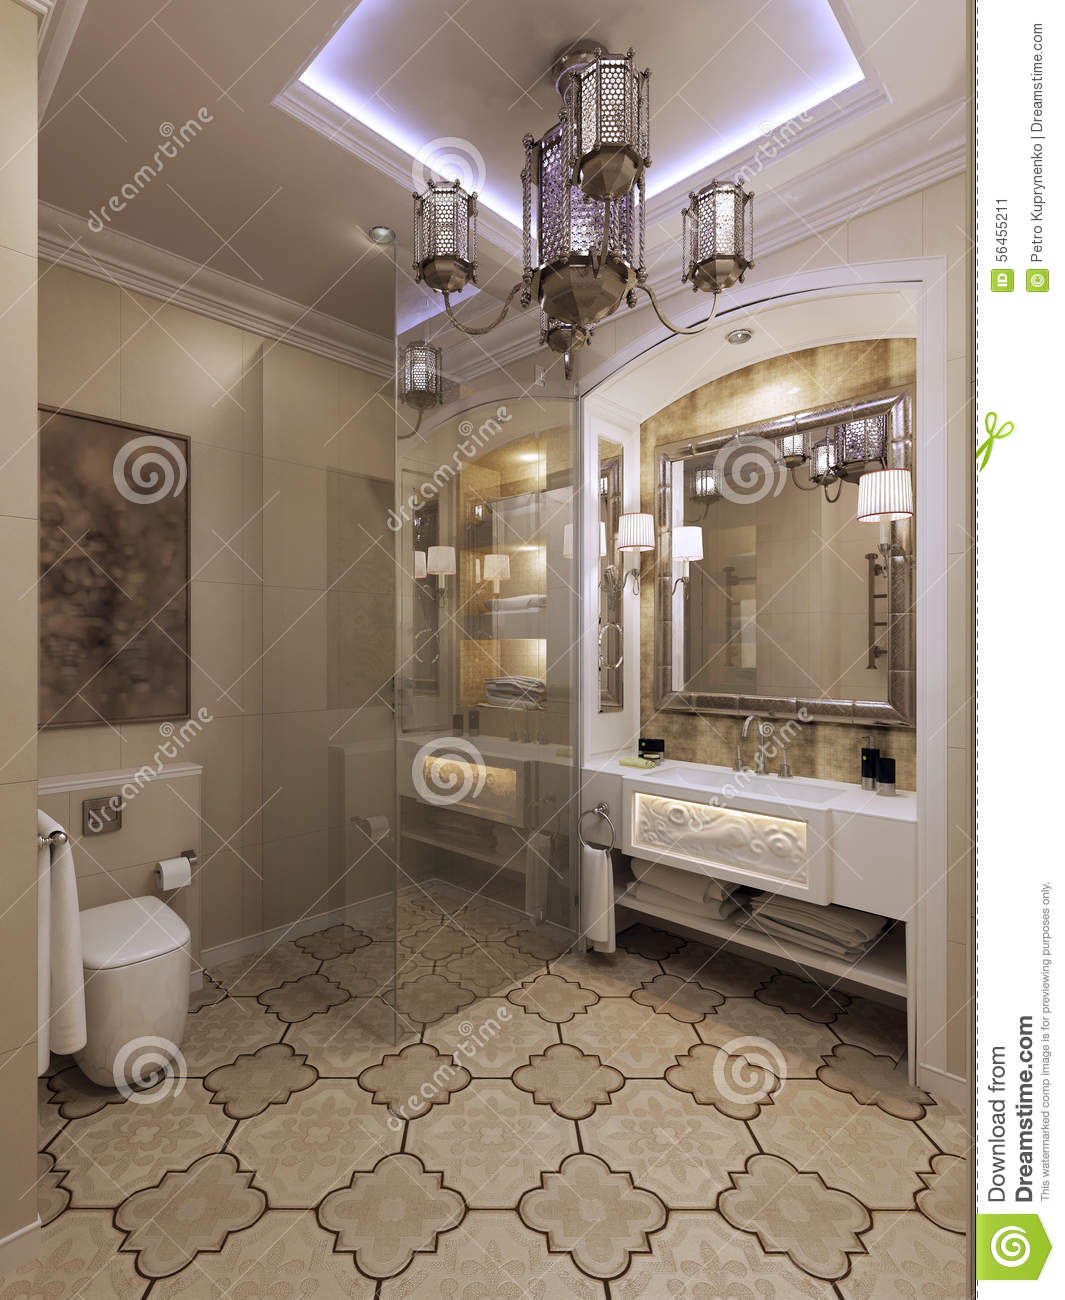 Arabic bathroom moroccan style stock illustration image for Salle de bain design marocain